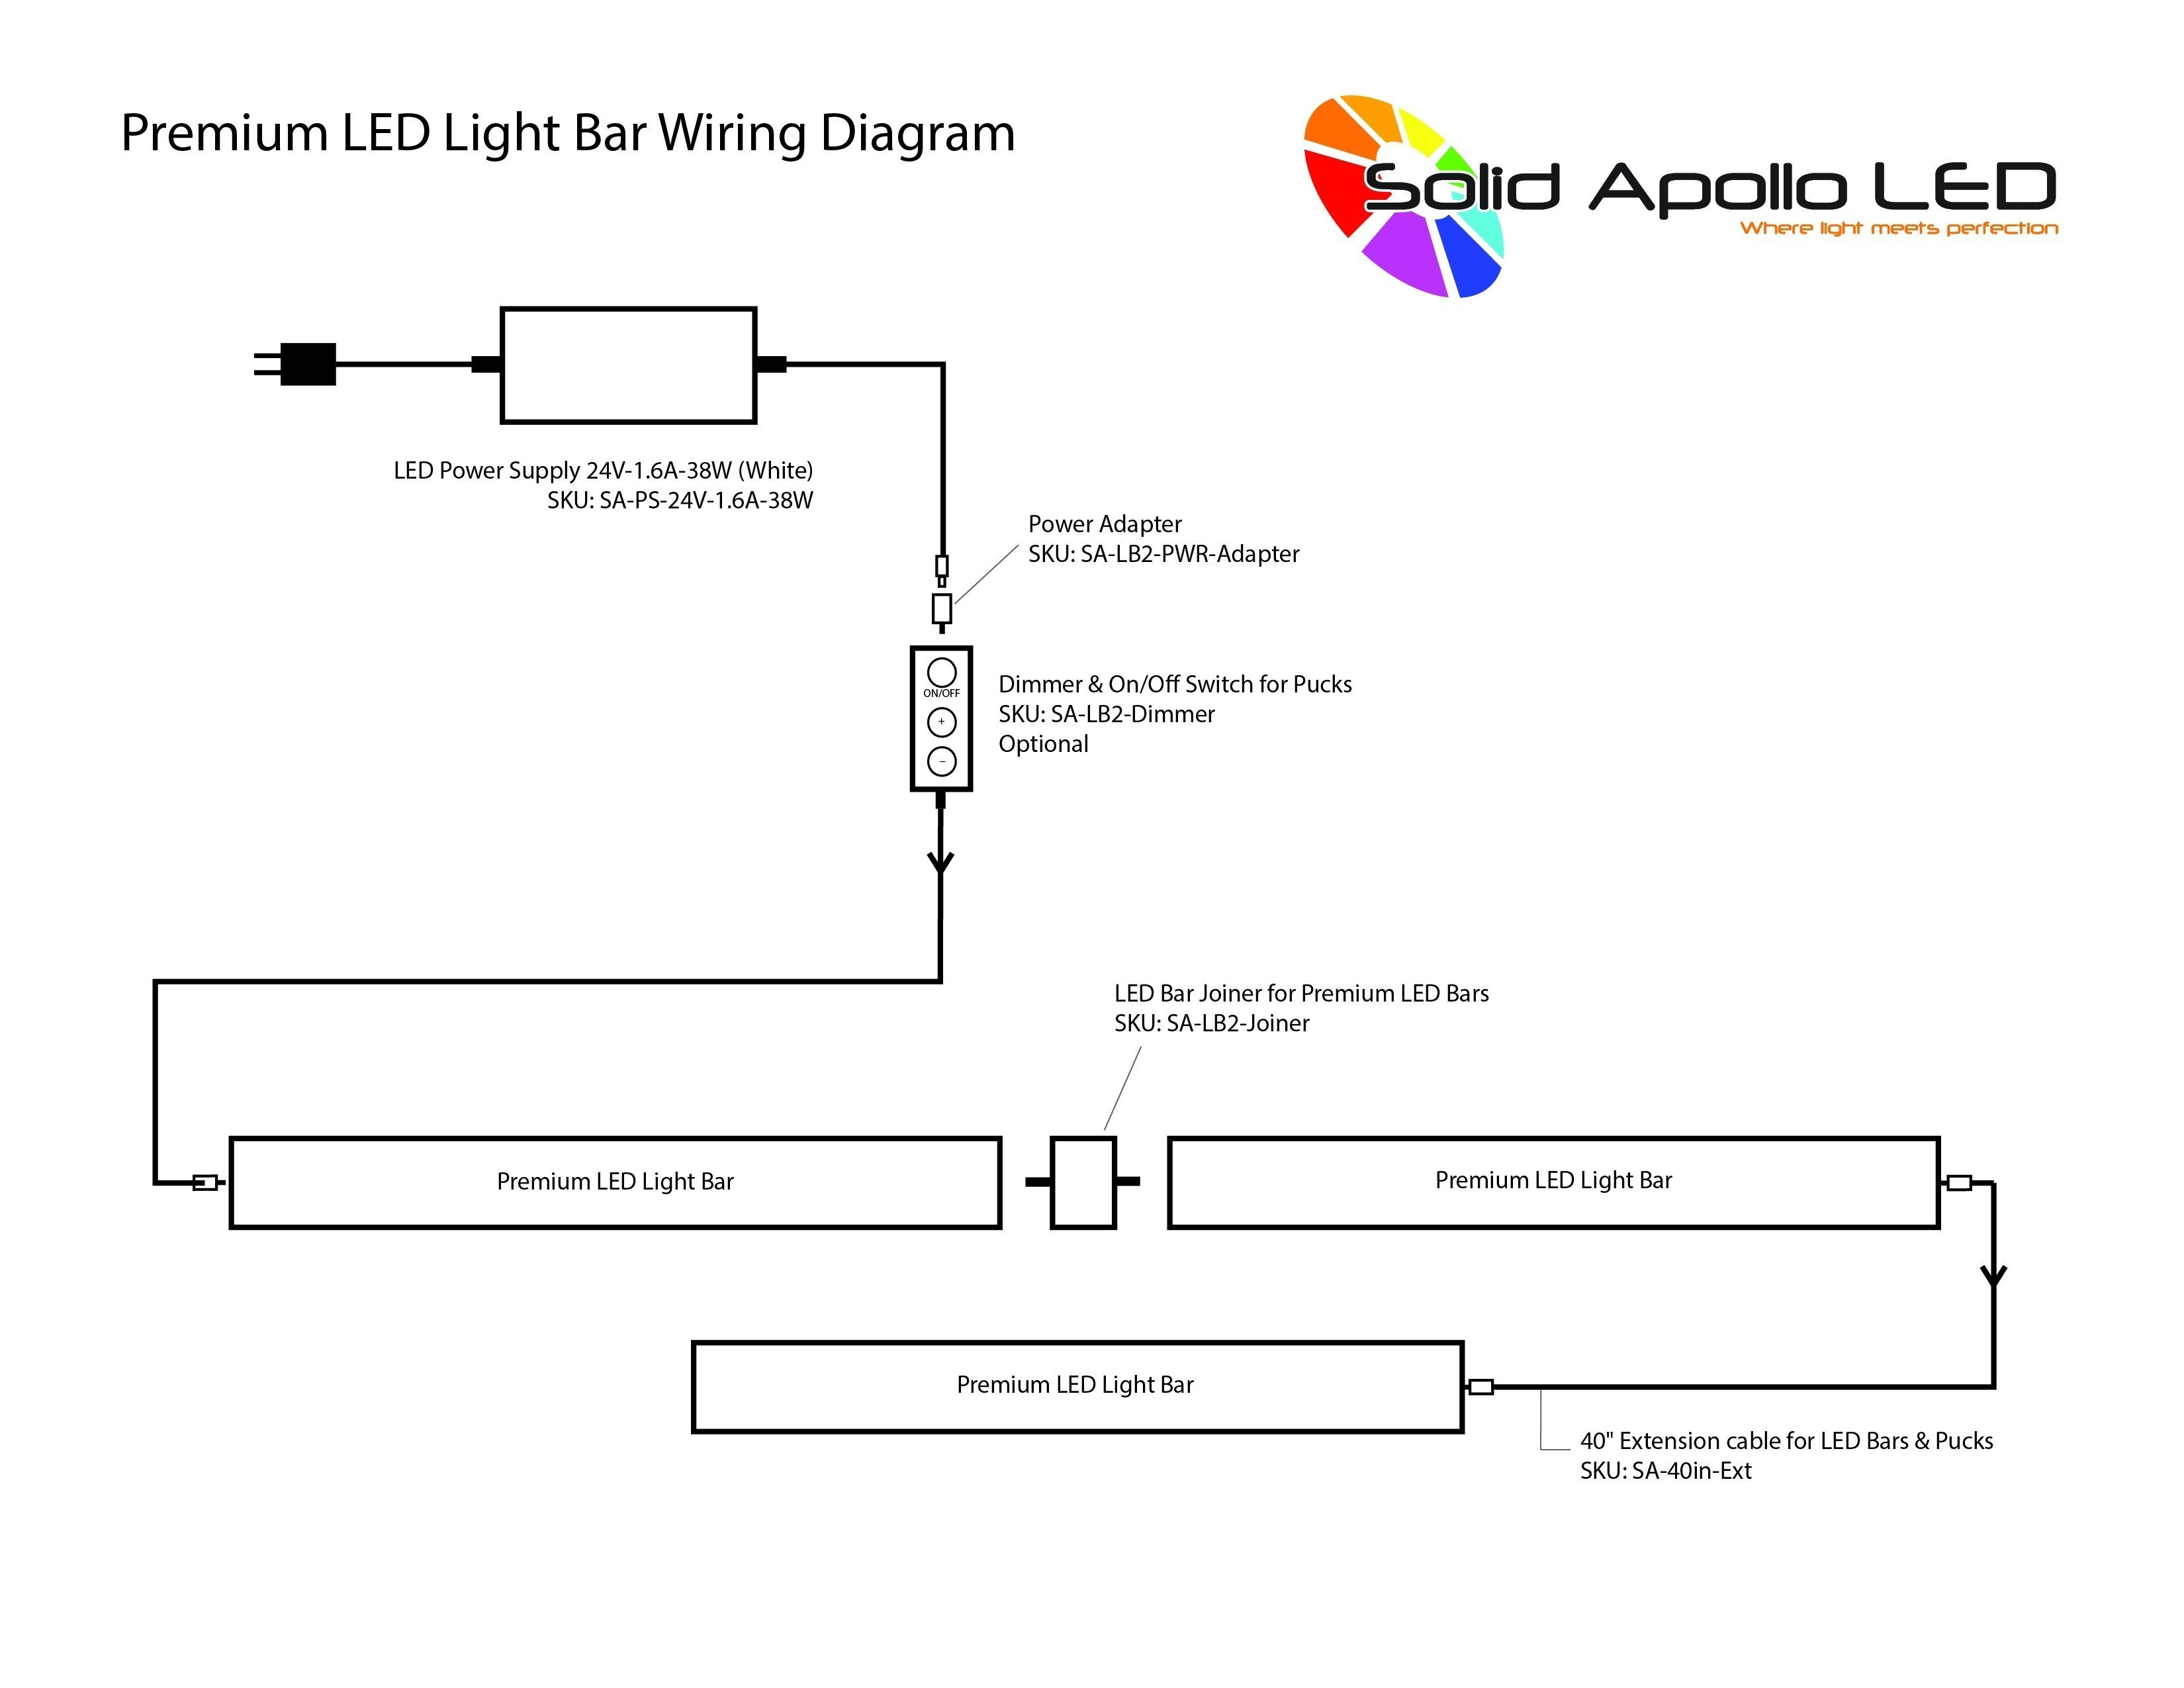 recon tailgate light bar wiring diagram Collection-Anzo Led Light Bar Wiring Diagram New Led Tailgate Light Bar Wiring Diagram Furthermore Led Light 3-e